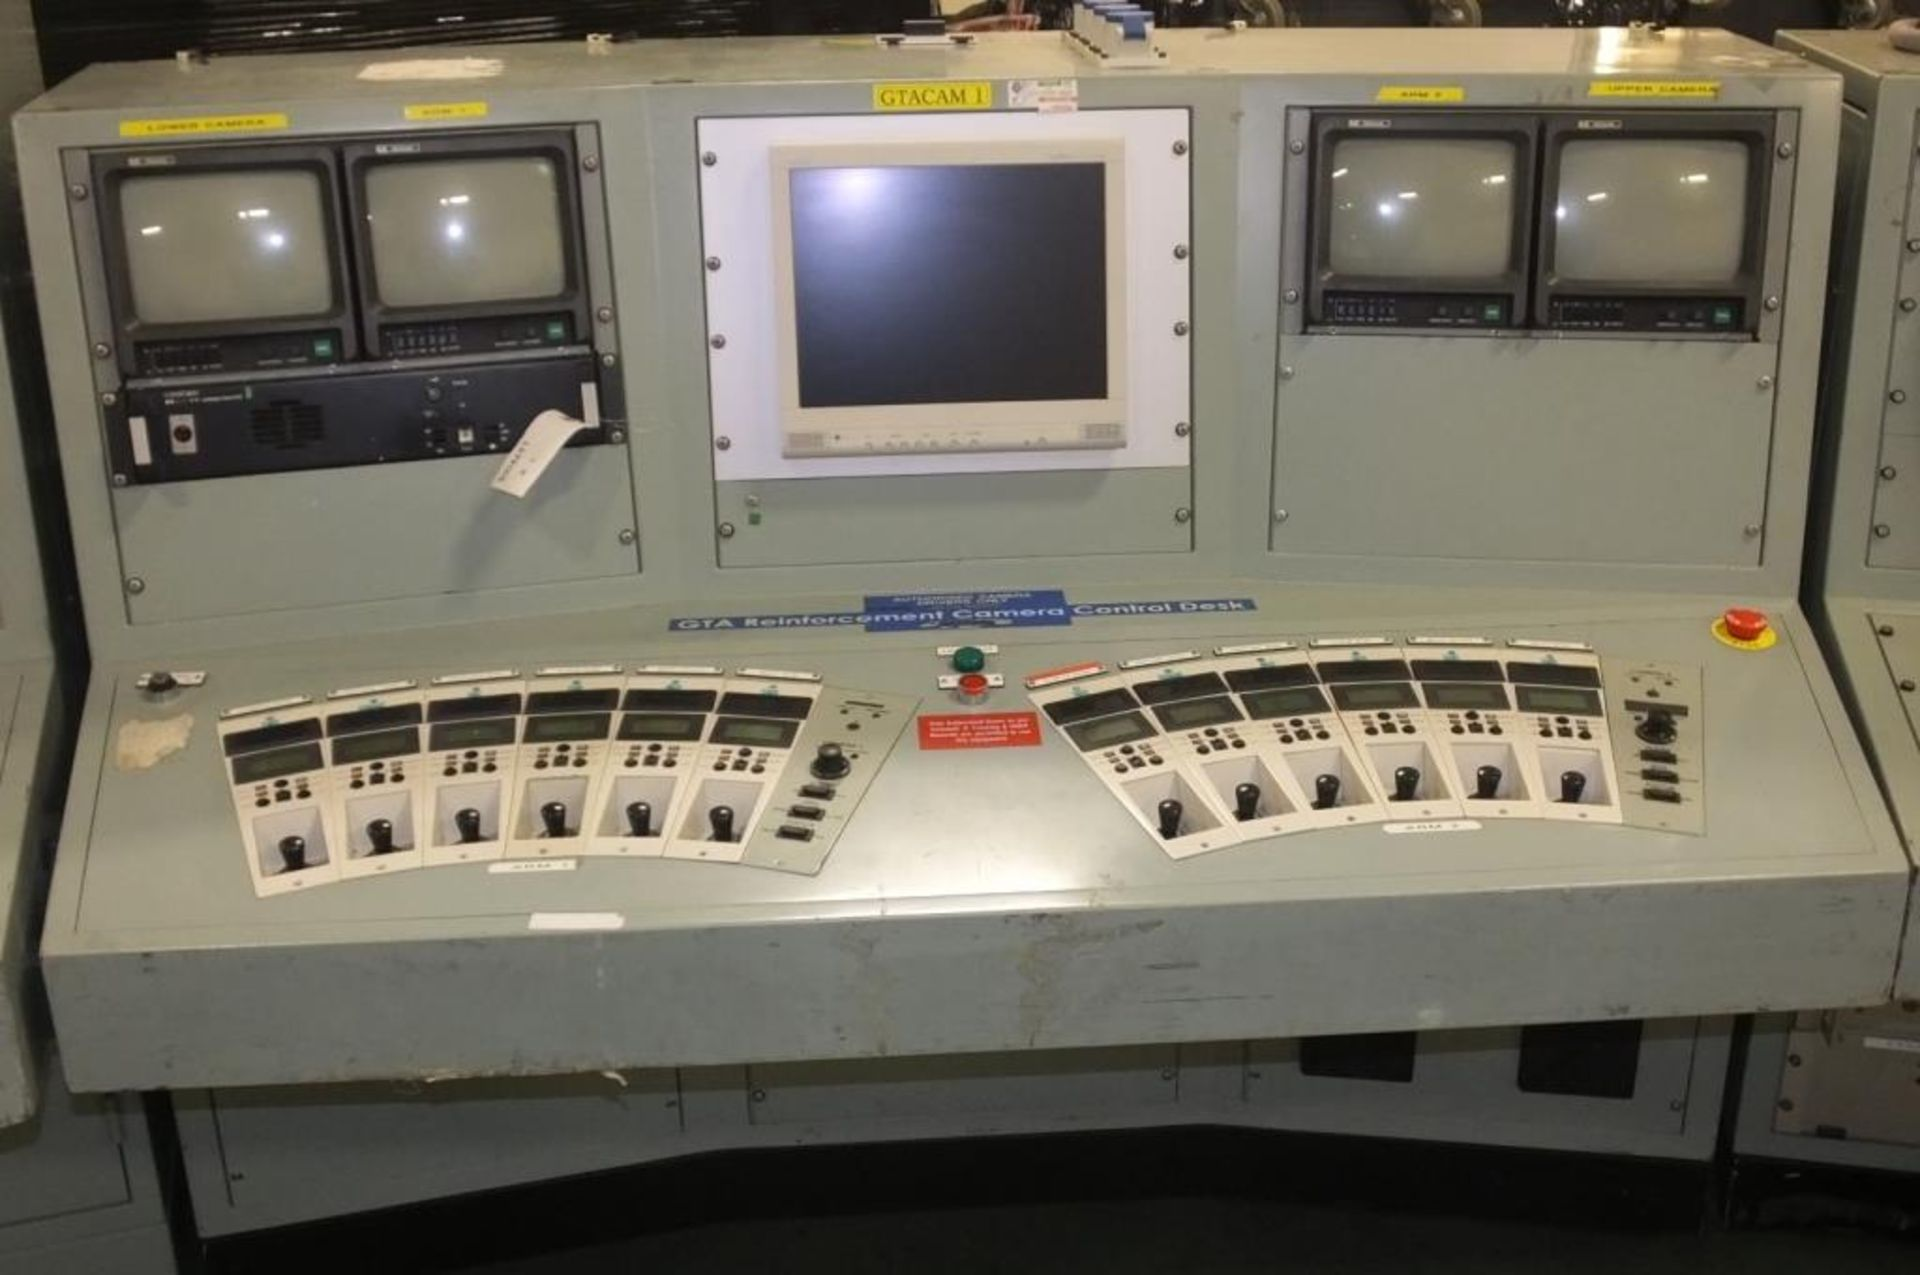 Ex Nuclear Plant Reactor Control / Monitoring System - Image 15 of 25